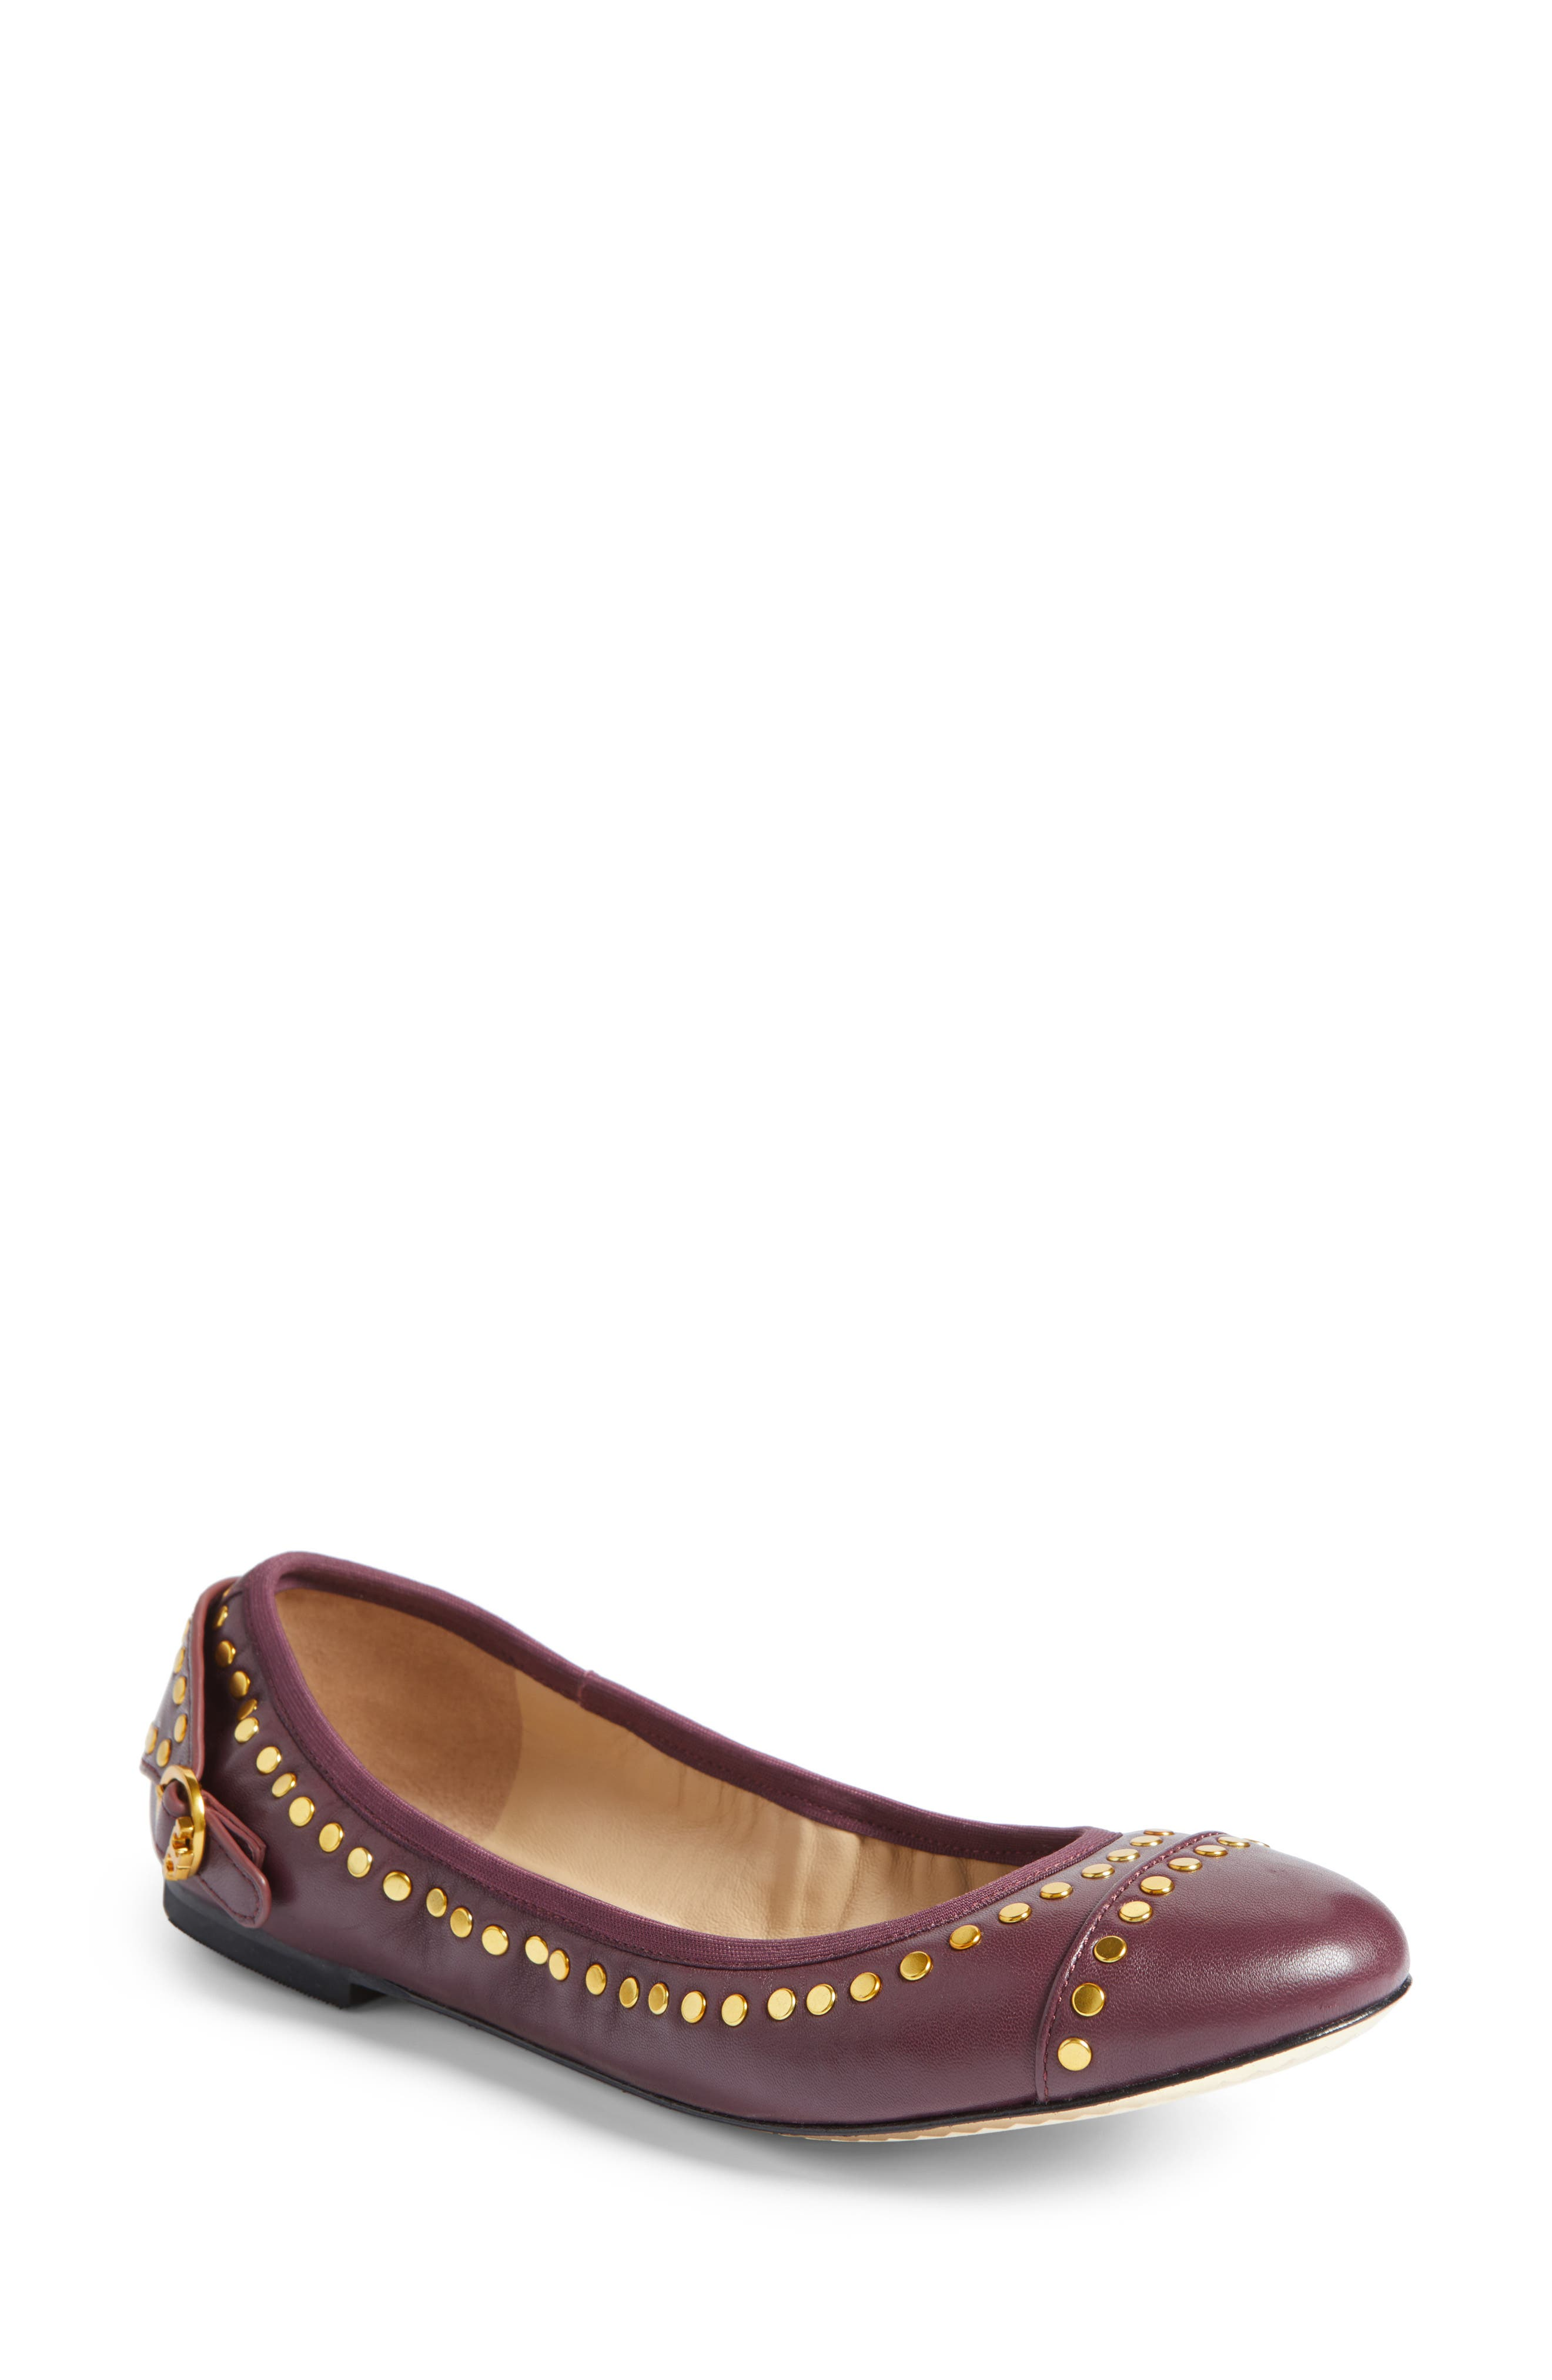 Alternate Image 1 Selected - Tory Burch Holden Studded Cap Toe Flat (Women)